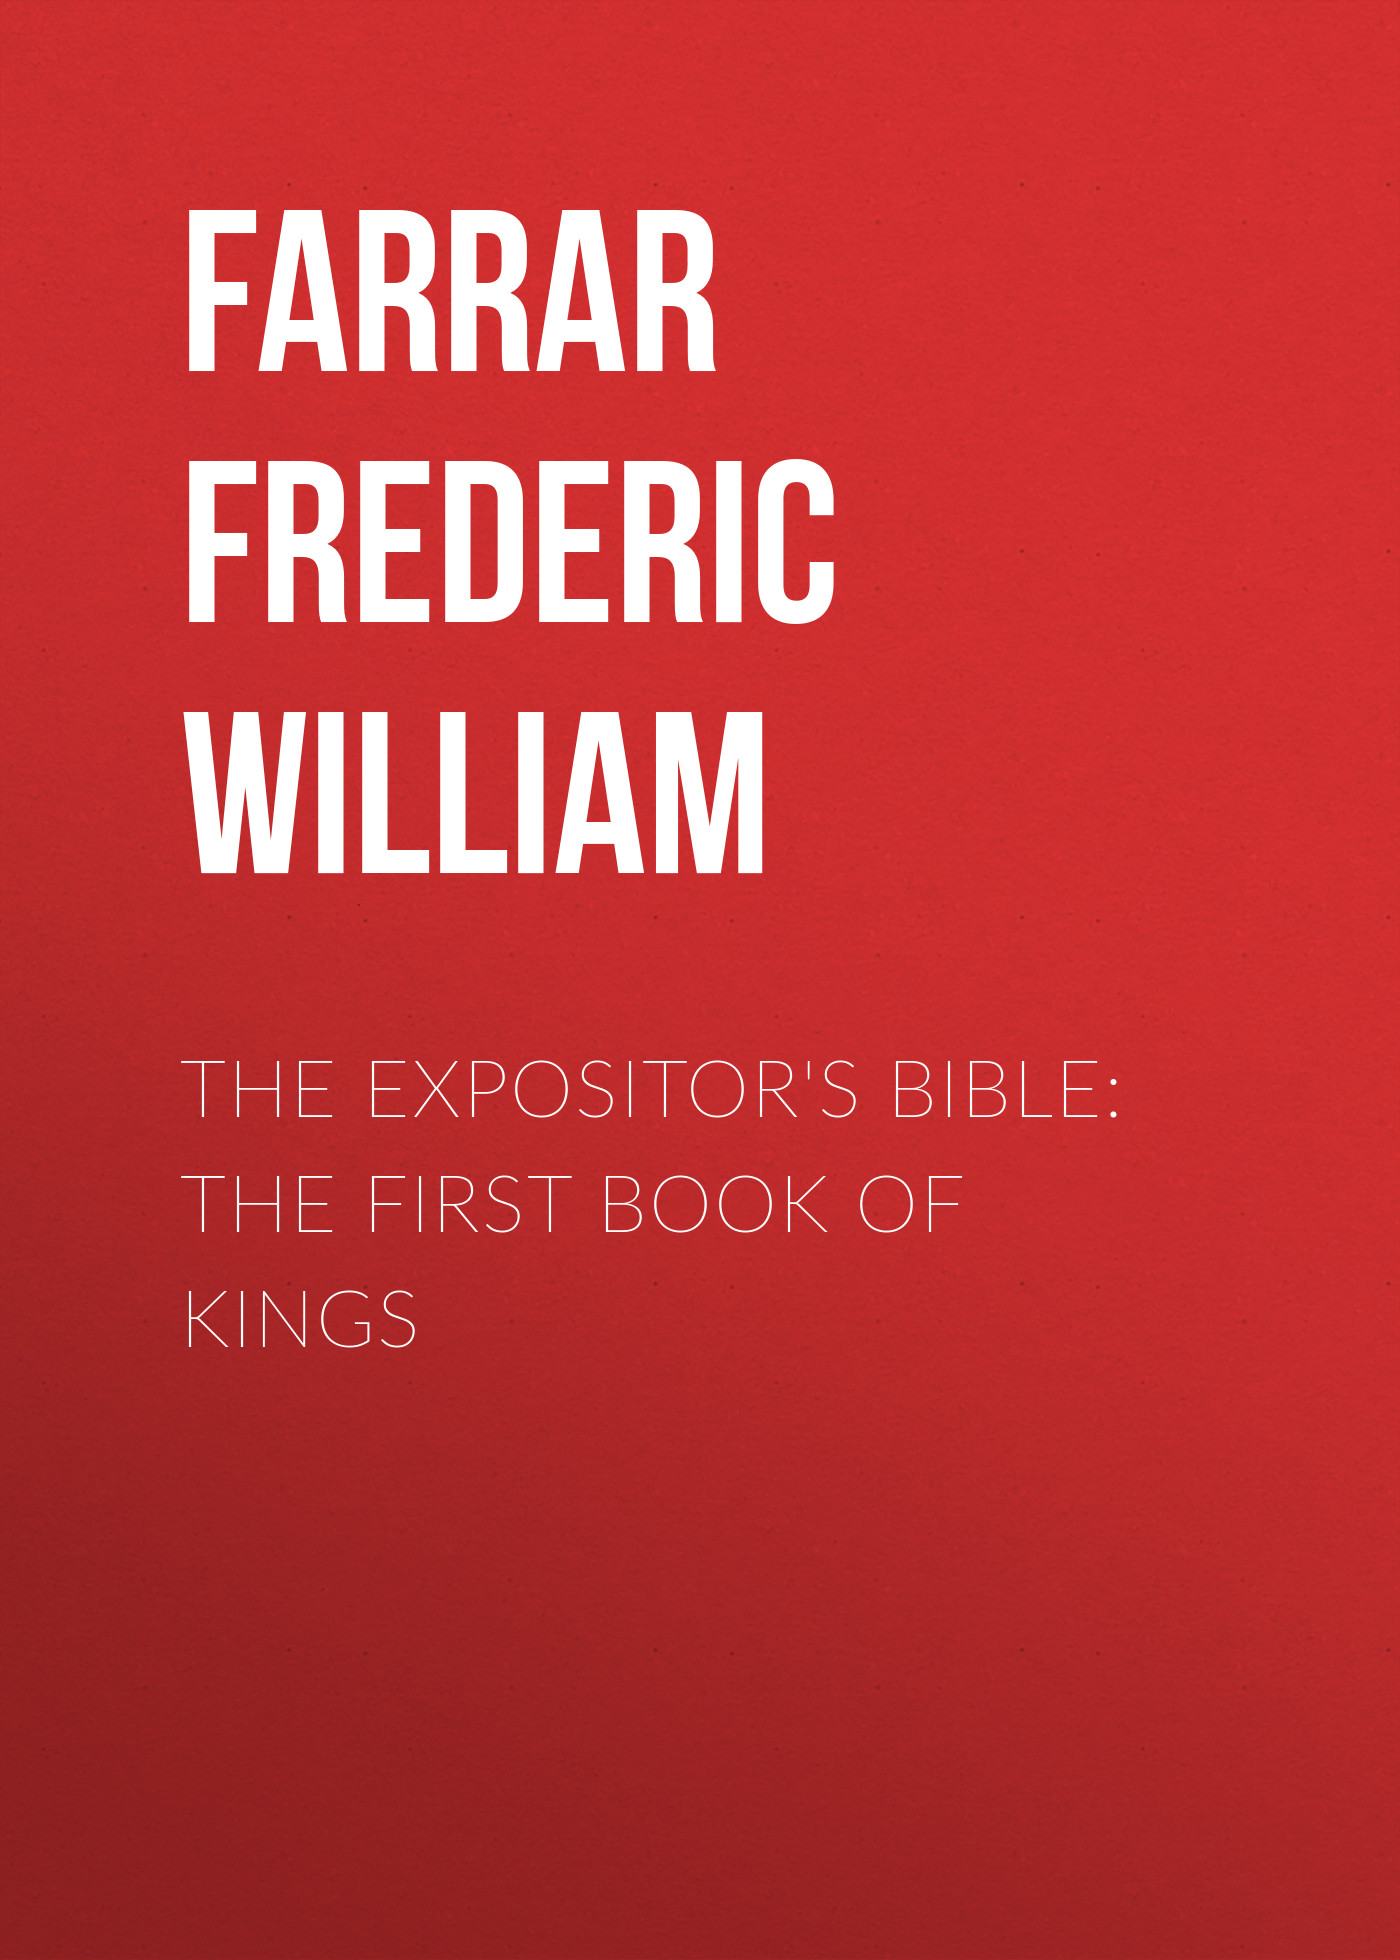 Farrar Frederic William The Expositor's Bible: The First Book of Kings bennett william henry the expositor s bible the books of chronicles